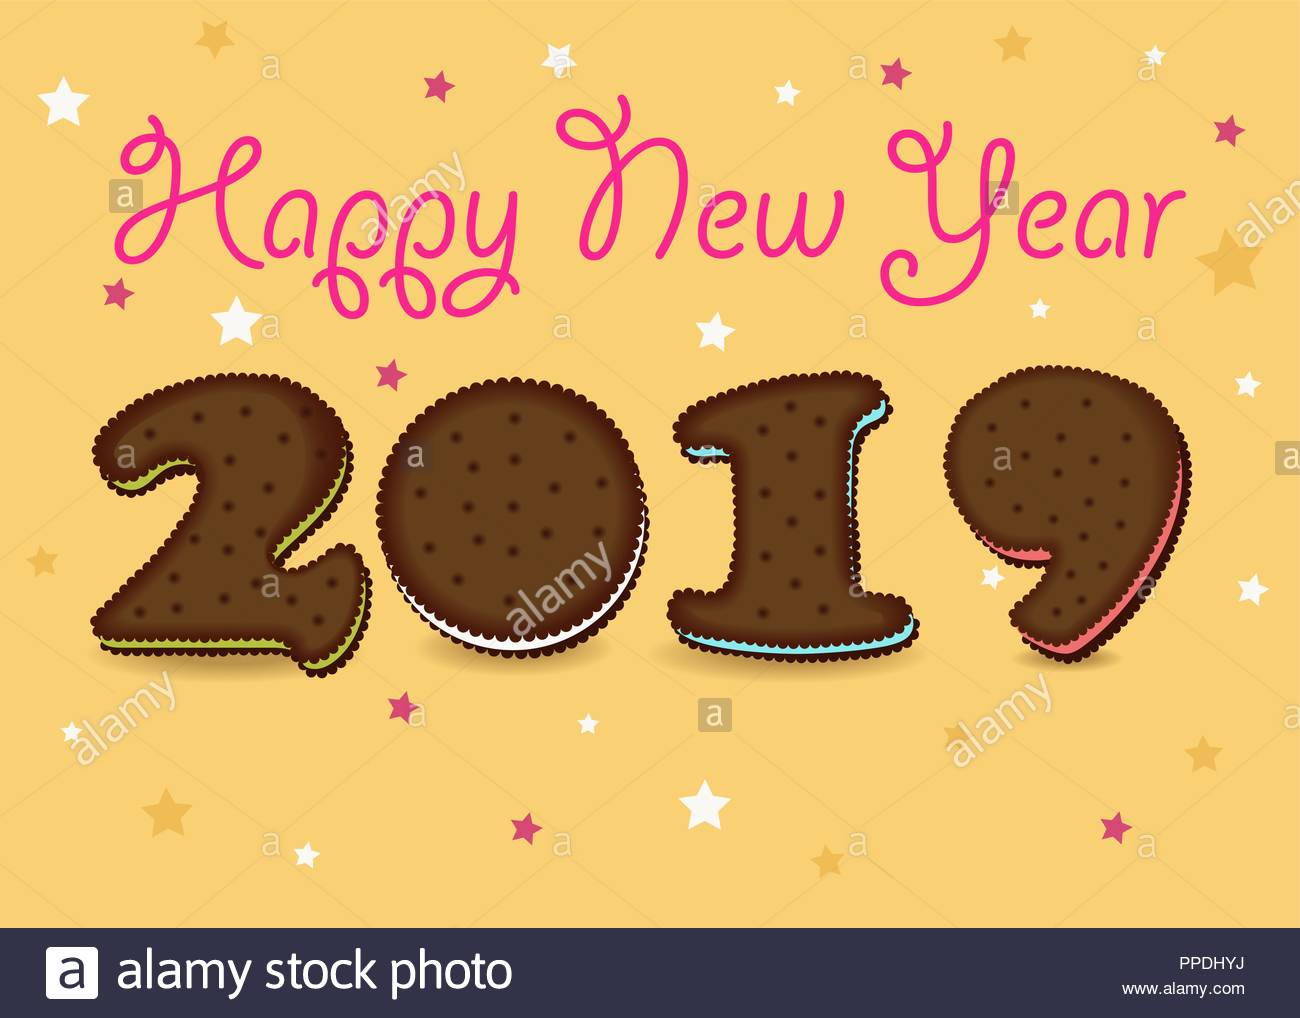 happy new year 2019 artistic brown number as chocolate cookies with colorful cream yellow background with stars pink text vector illustration